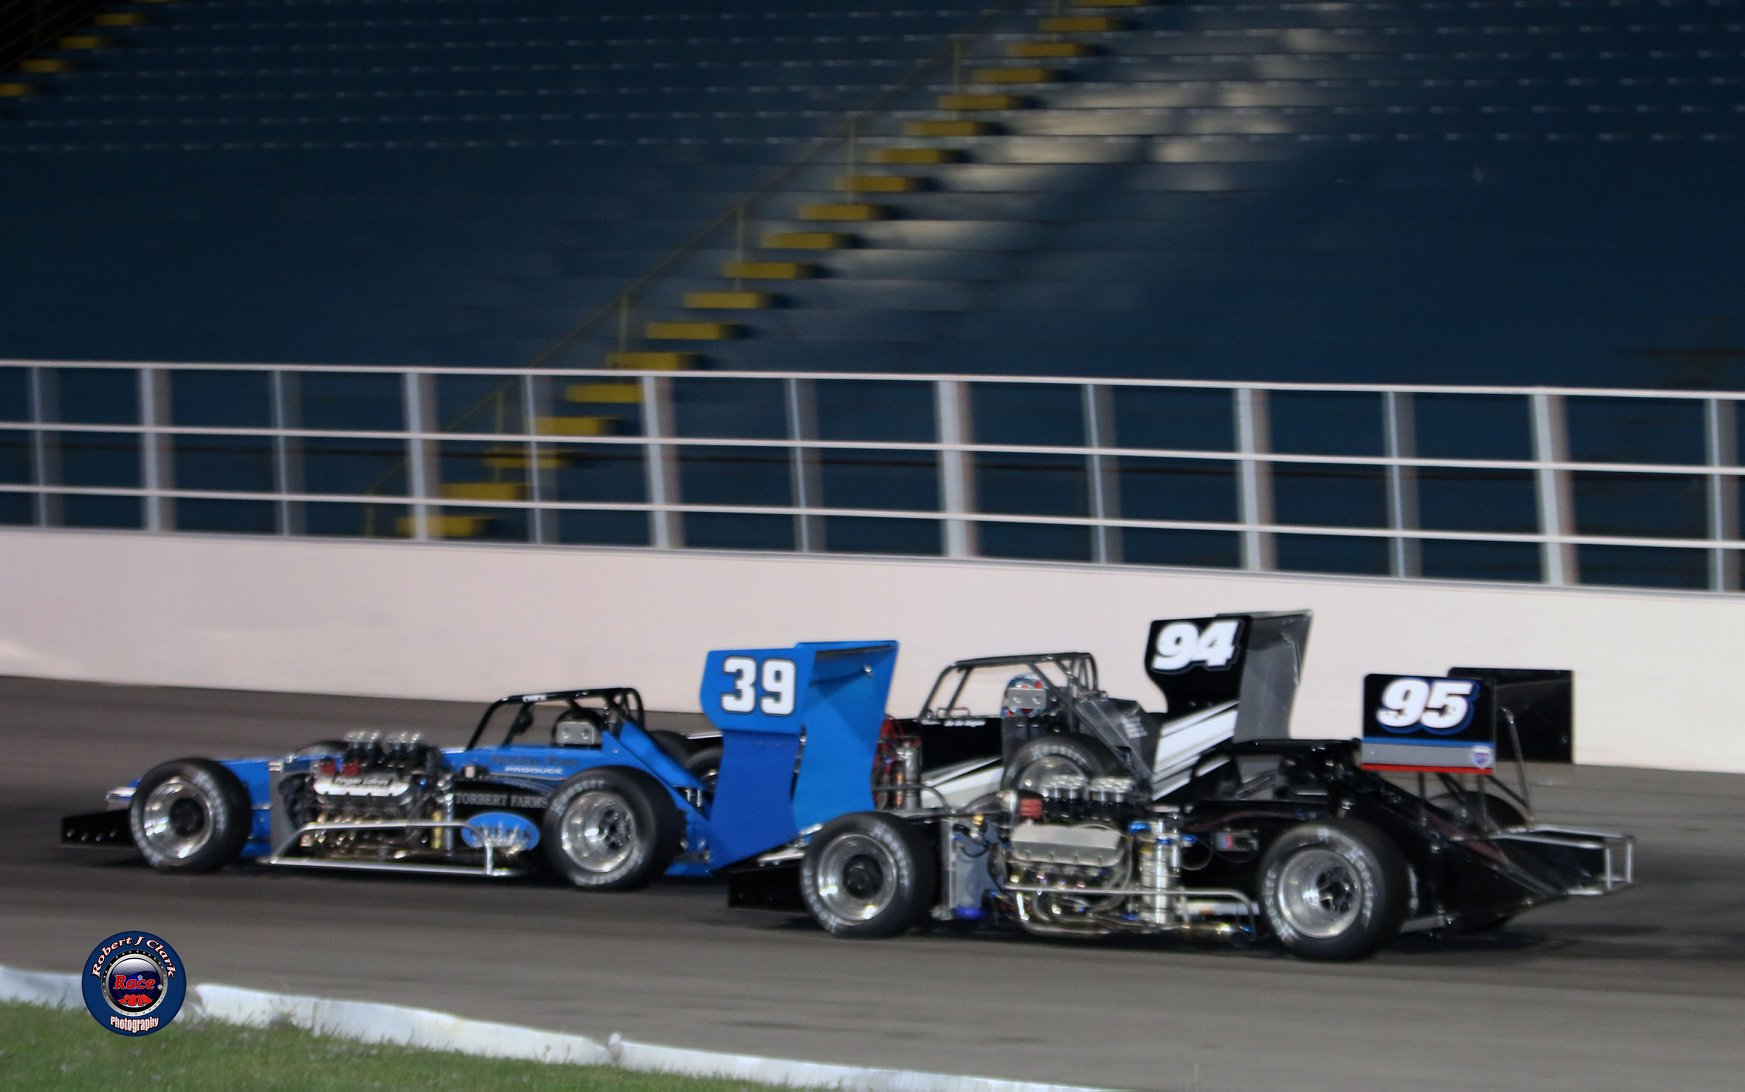 Alison Sload races with Logan Rayvals and Dave Shullick Jr. Saturday, August 10 (Robert J Clark photo)